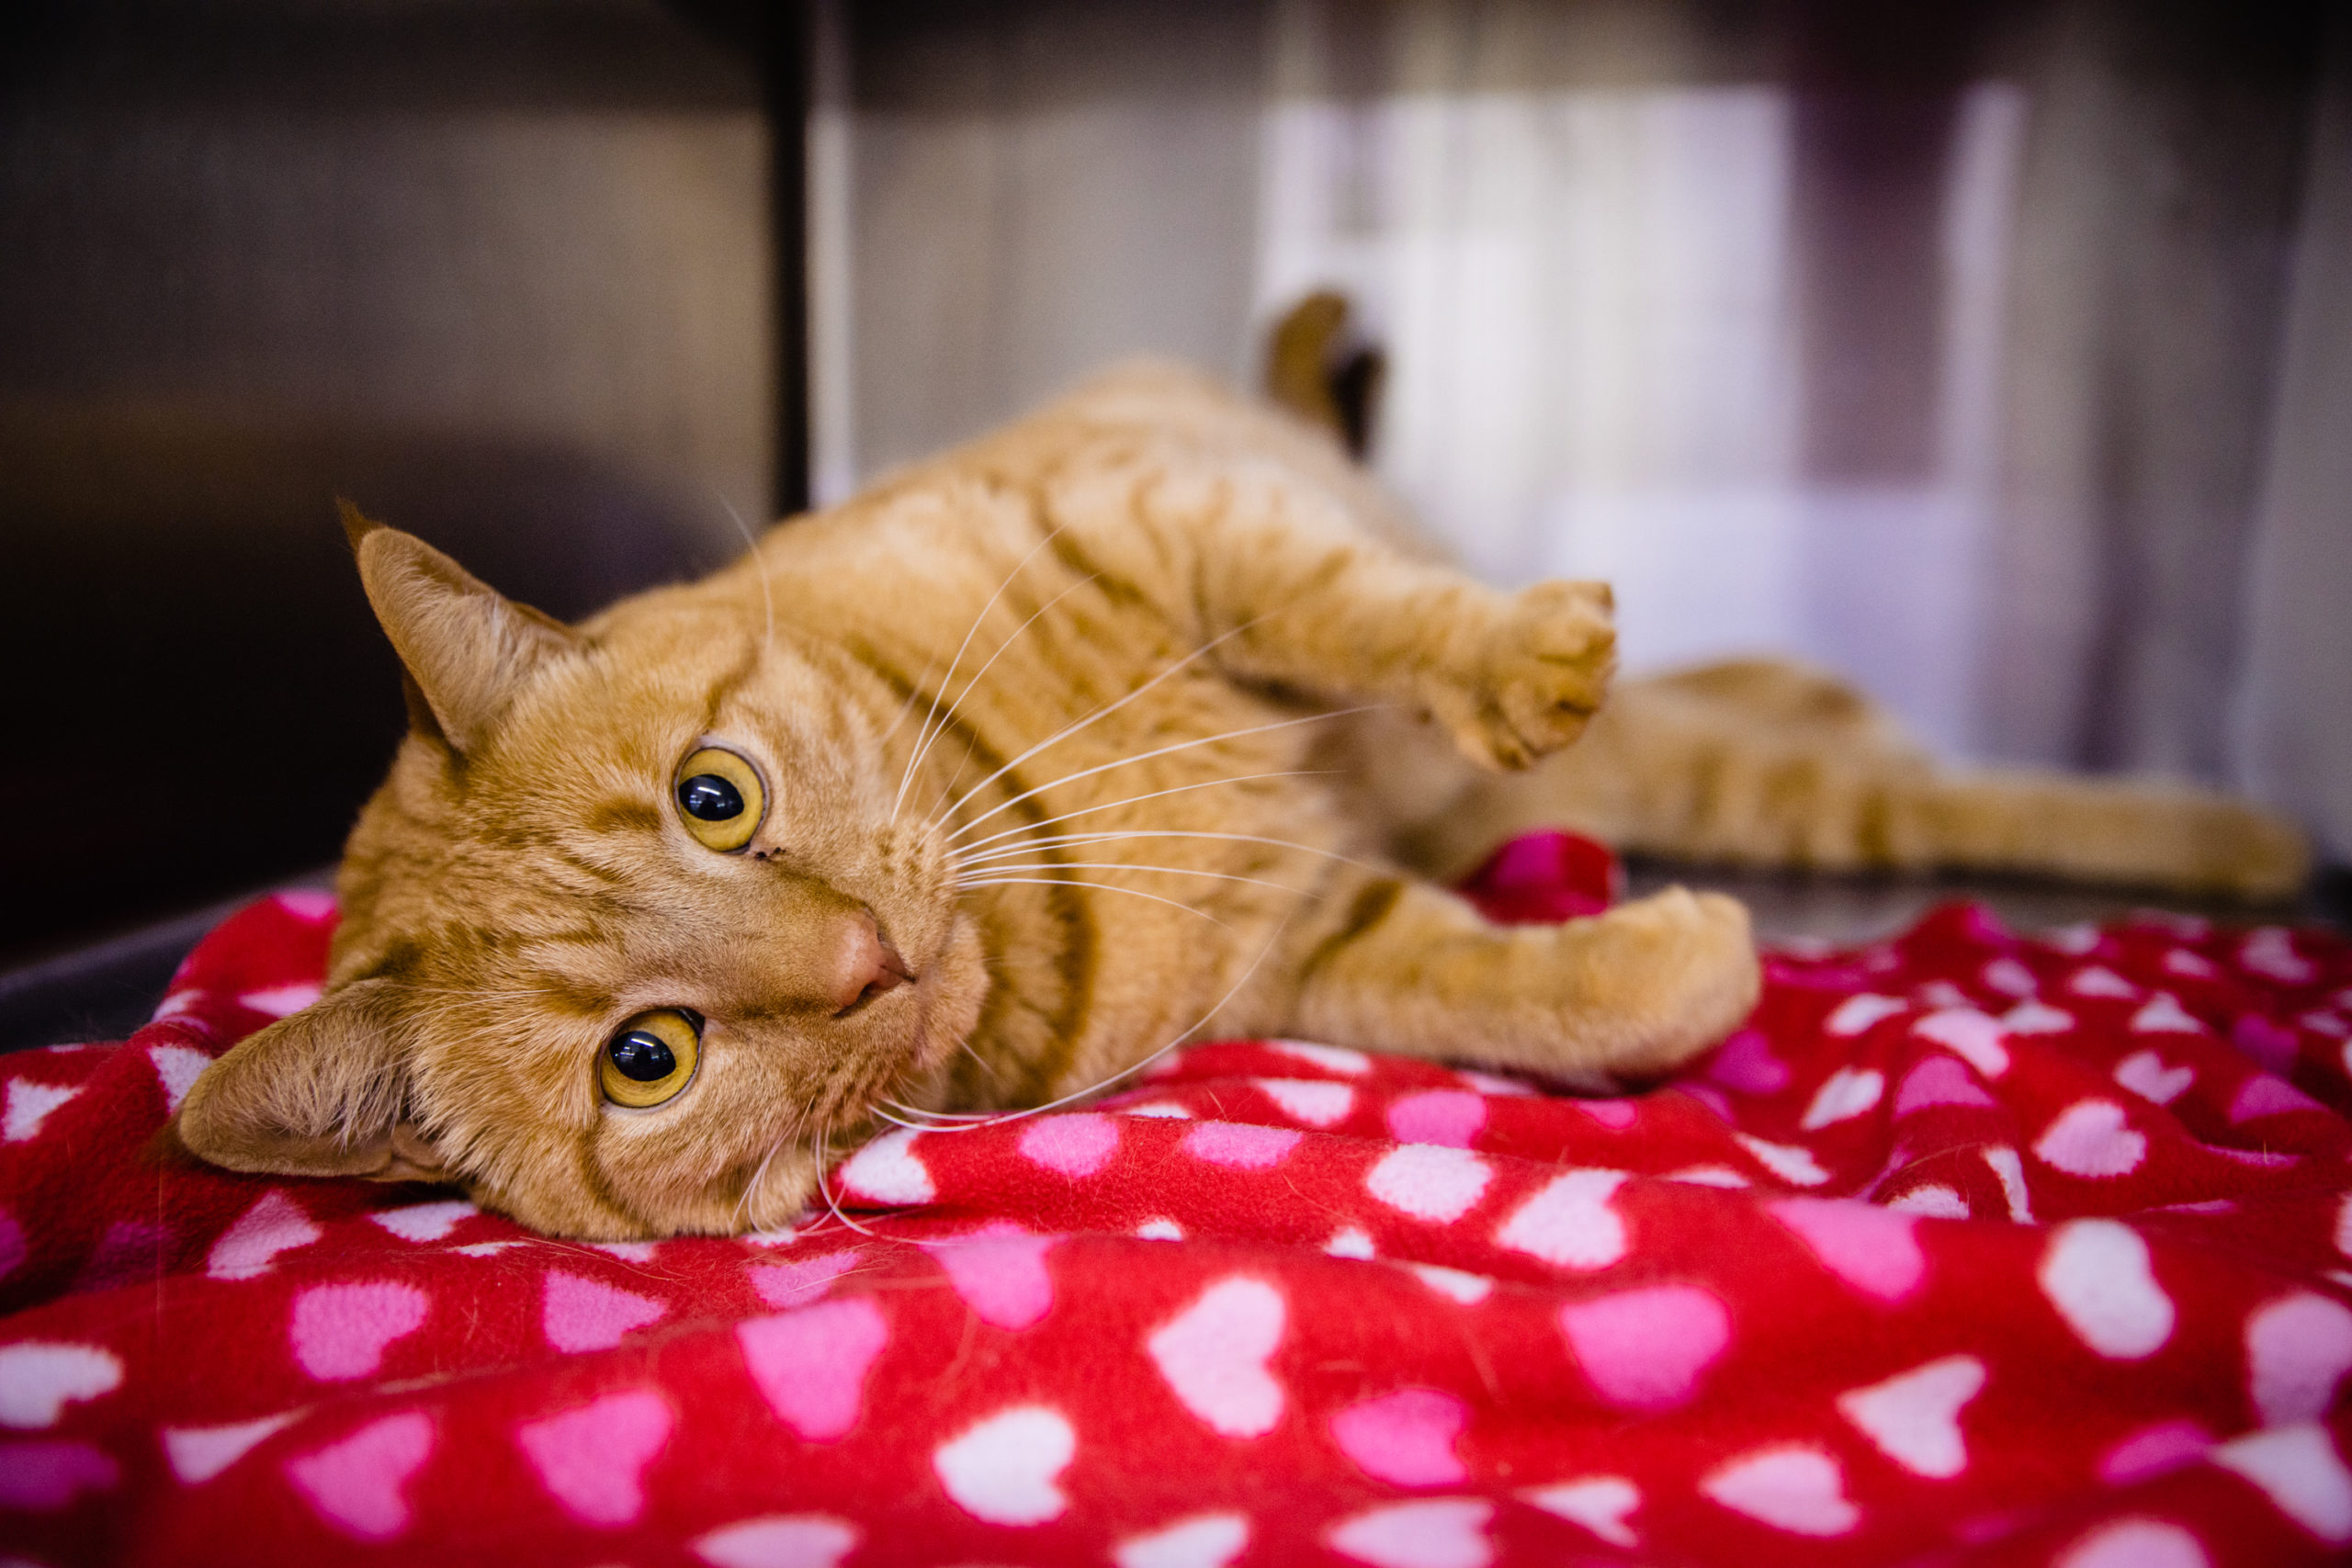 A light brown cat stares at the camera while laying on a red heart-themed blanket